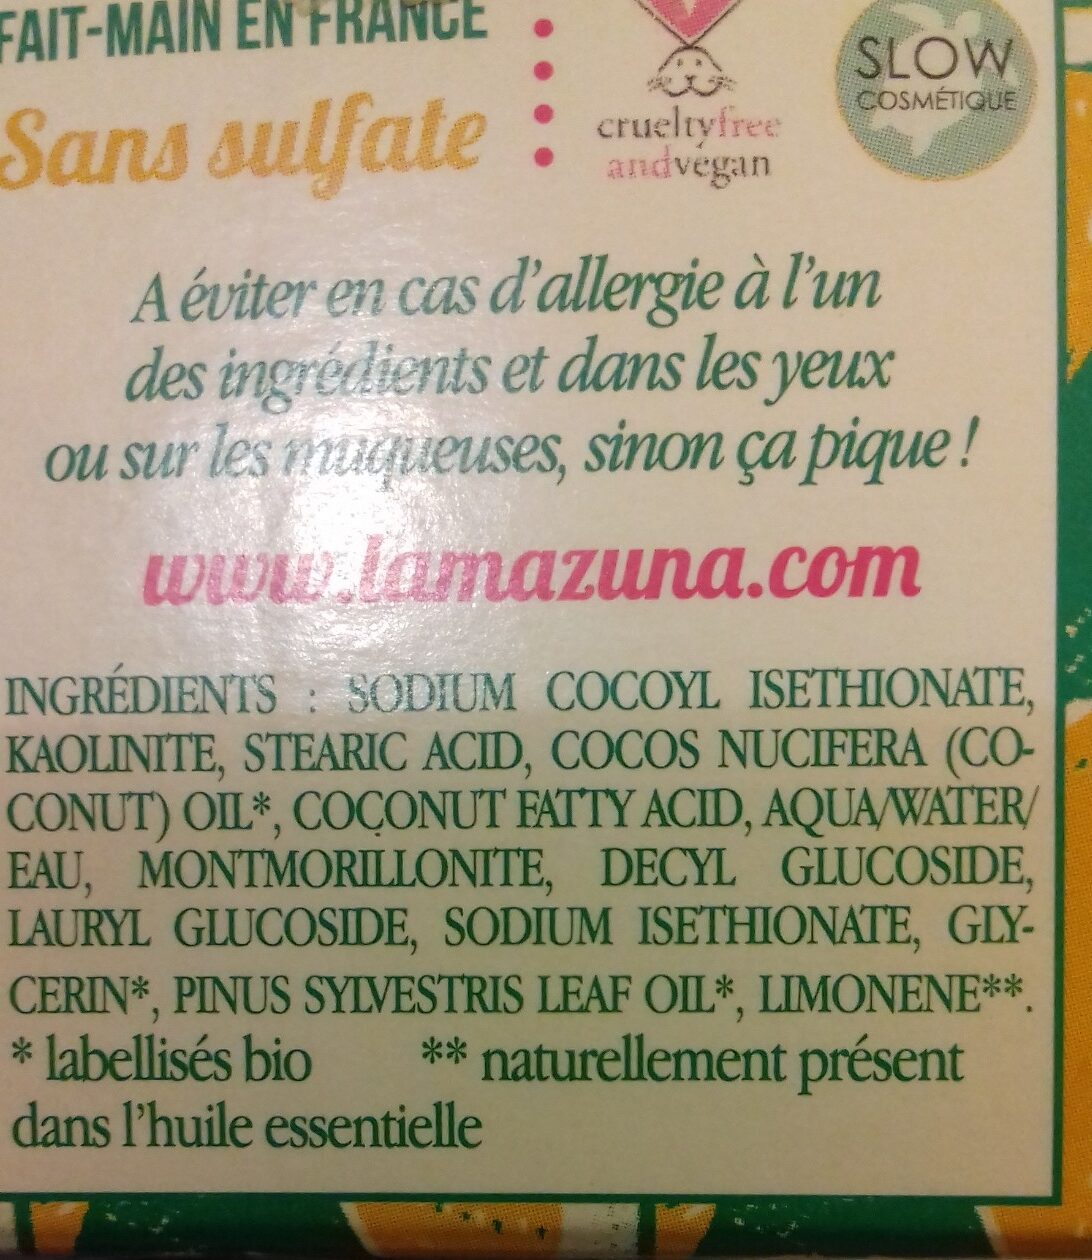 Shampoing solide - cheveux normaux - au pin sylvestre - Ingredients